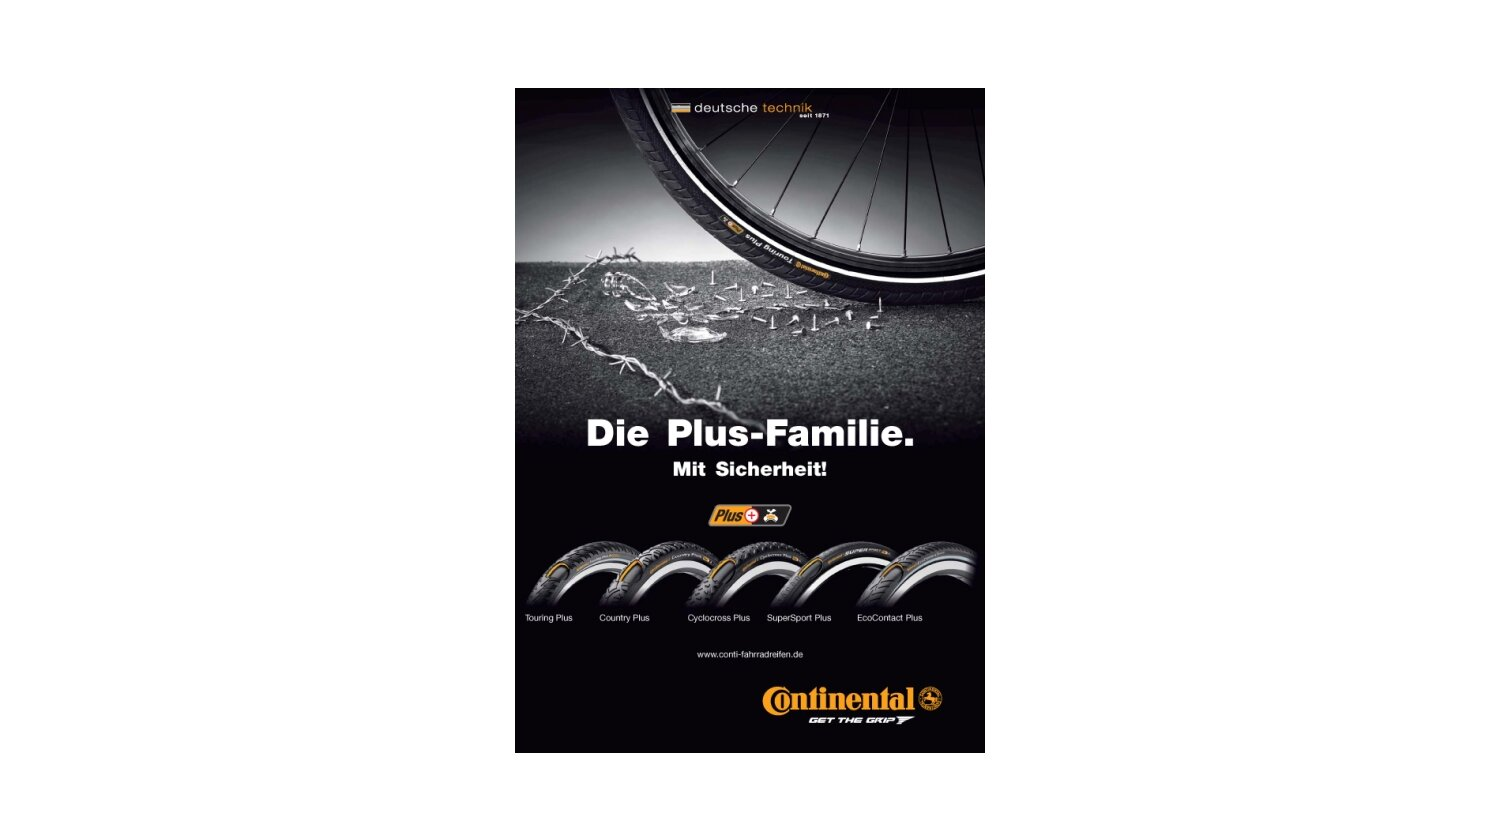 Continental SuperSport Plus 28 Drahtreifen